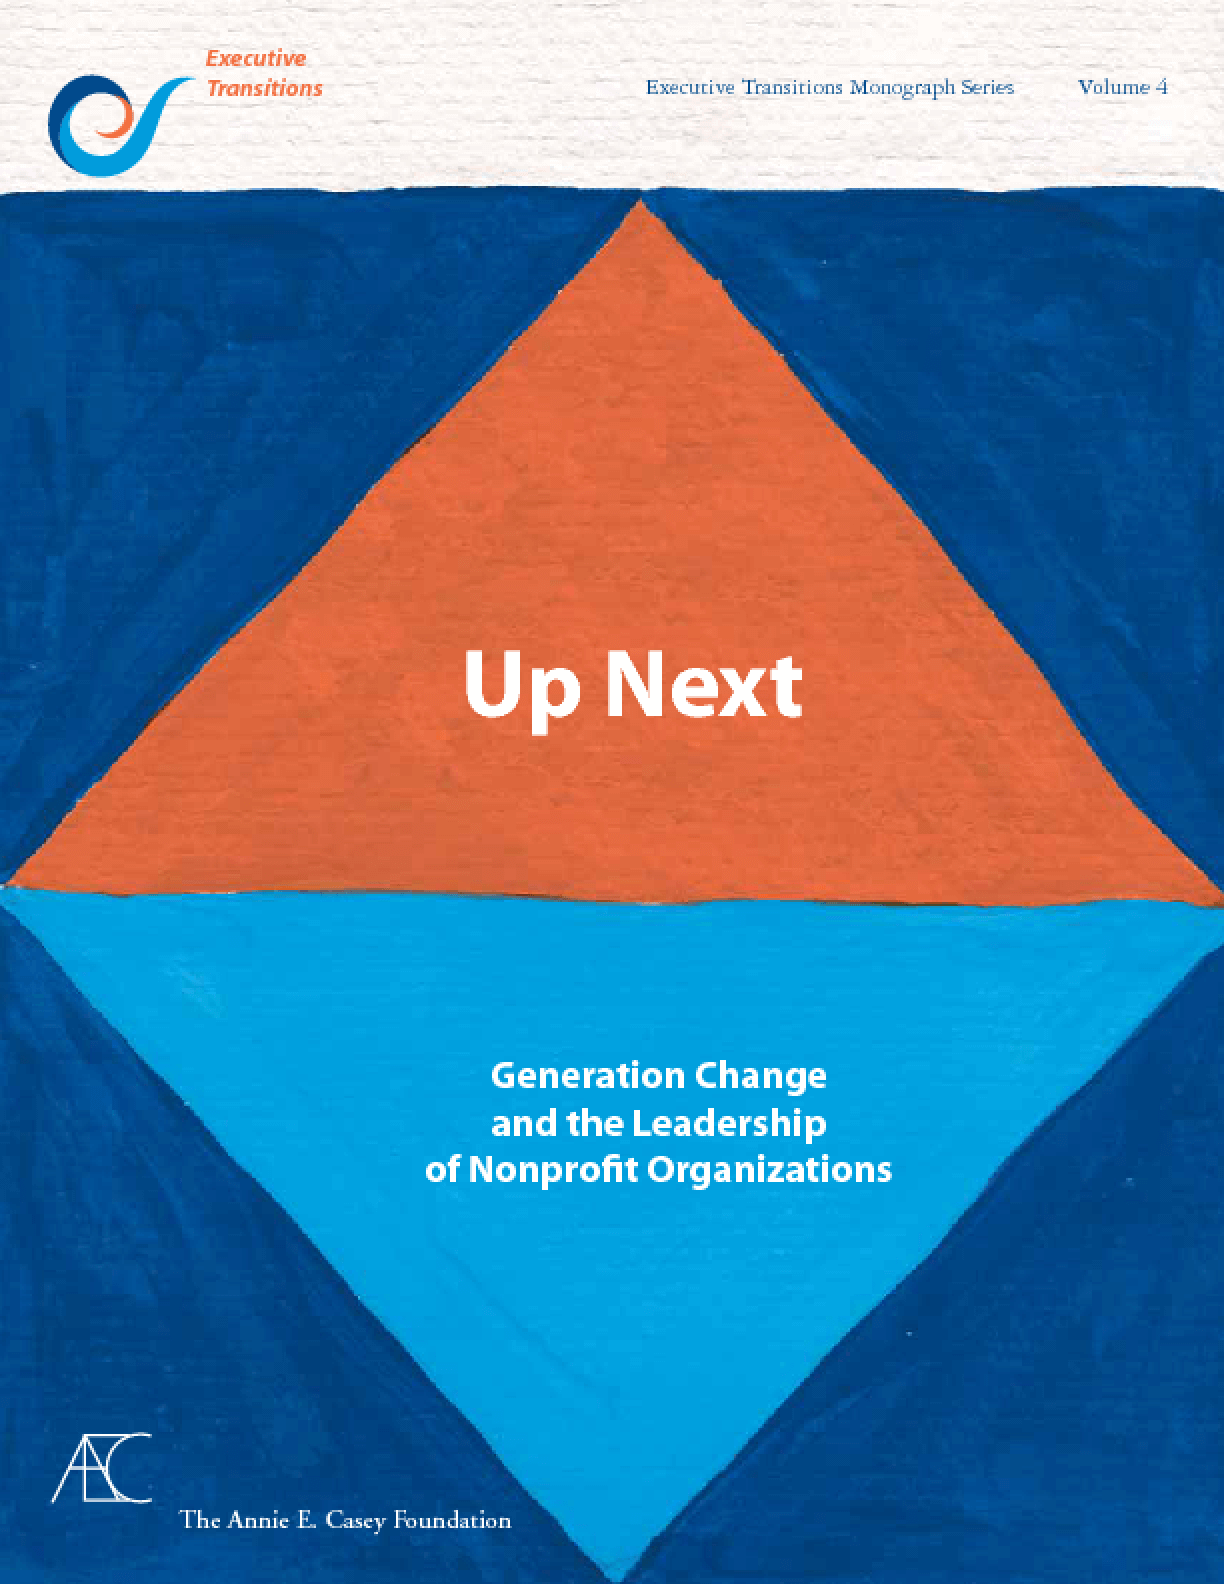 Up Next: Generation Change and the Leadership of Nonprofit Organizations